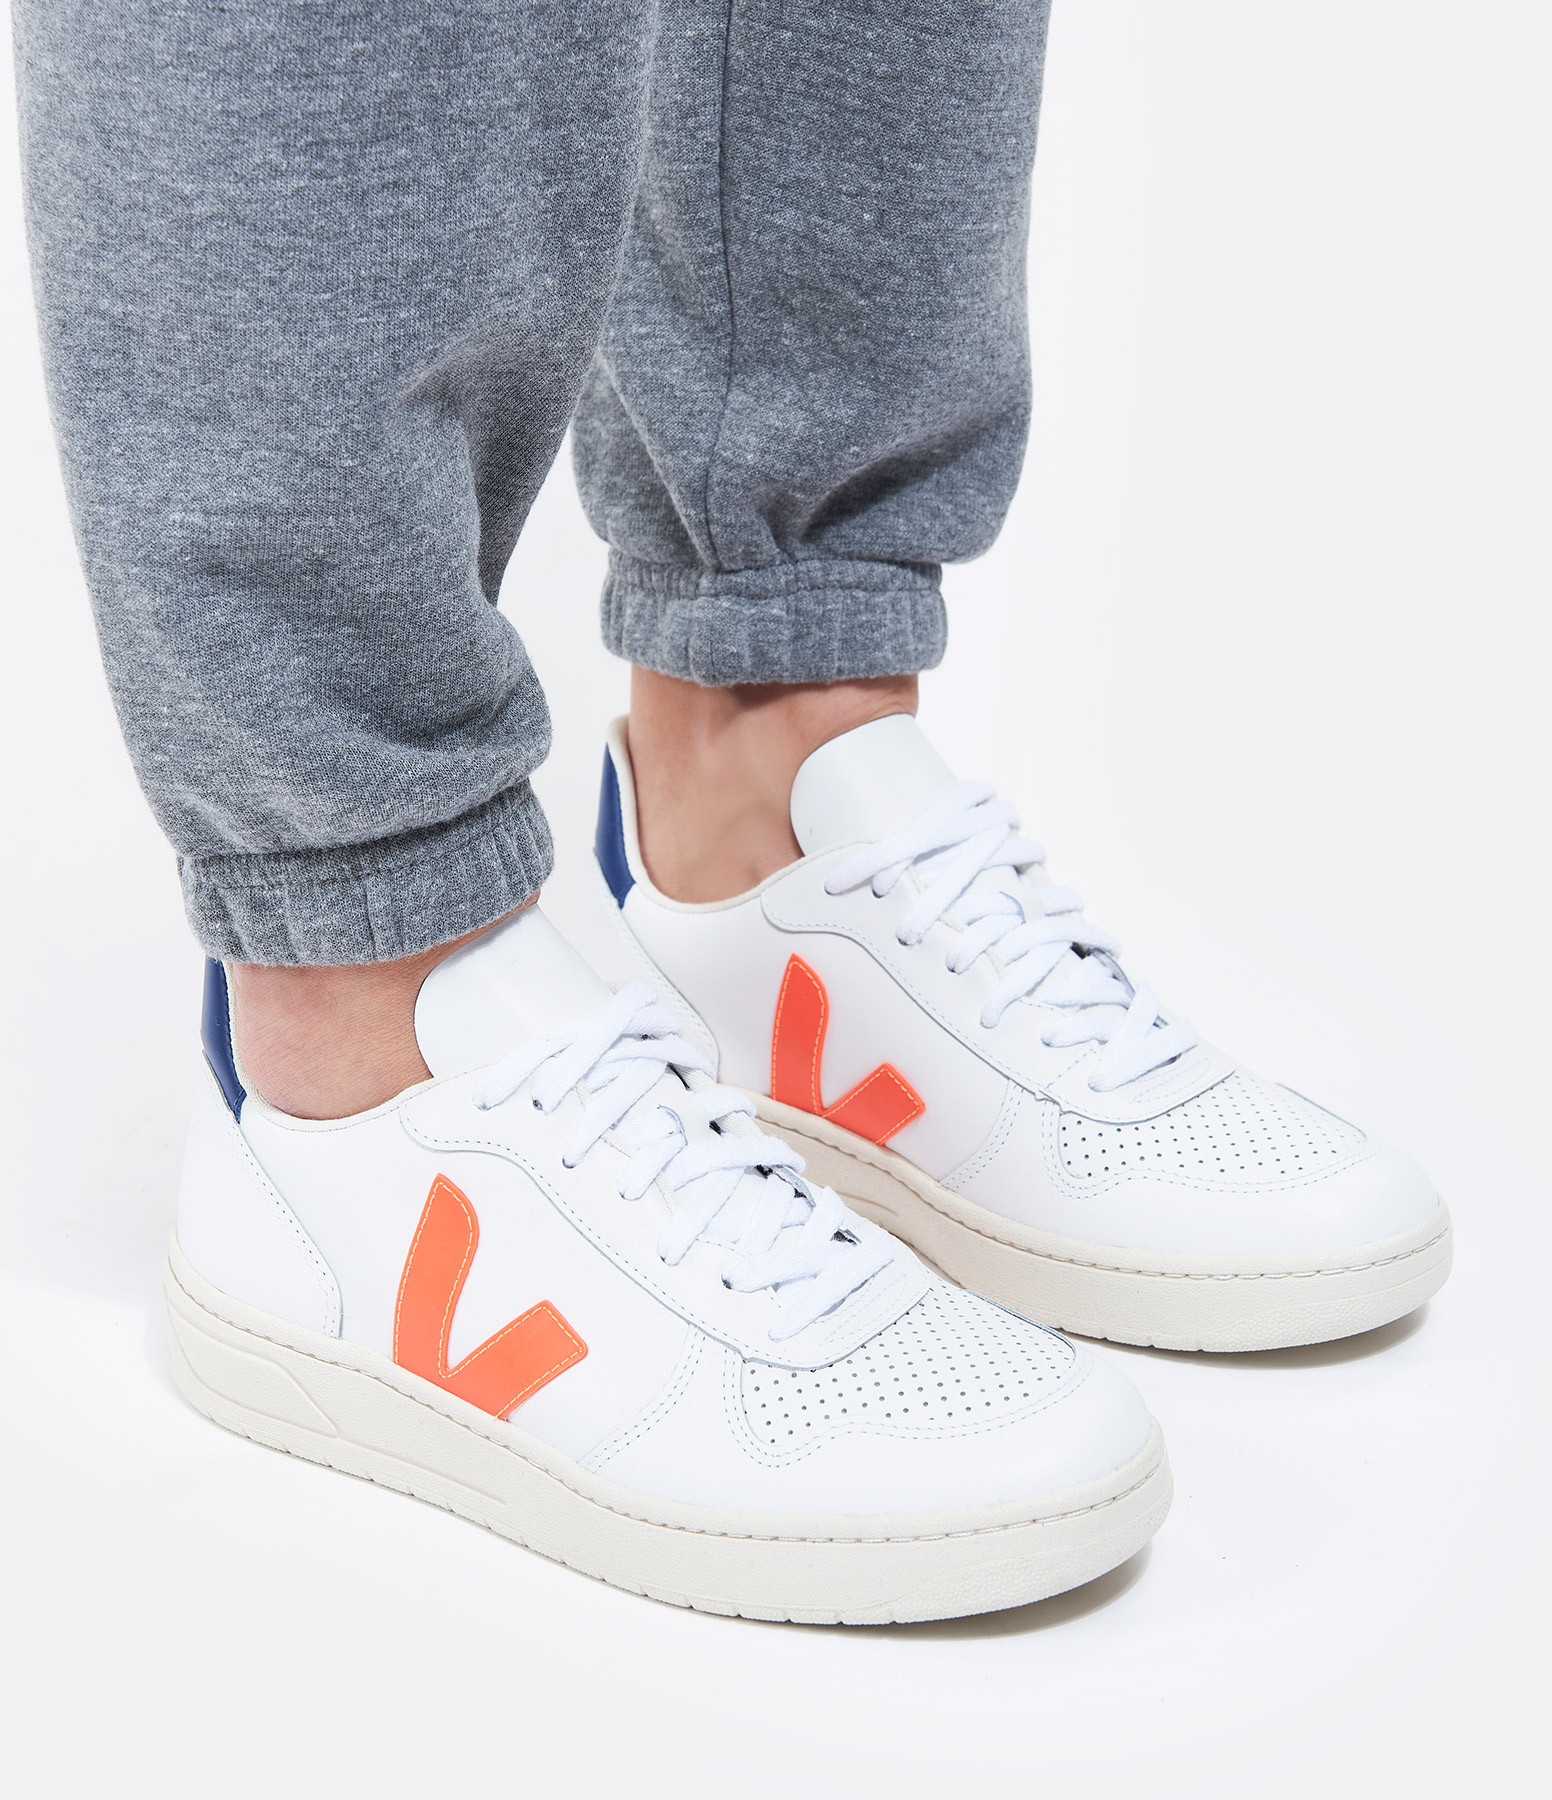 VEJA - Baskets V-10 Cuir Blanc Orange Fluo Cobalt